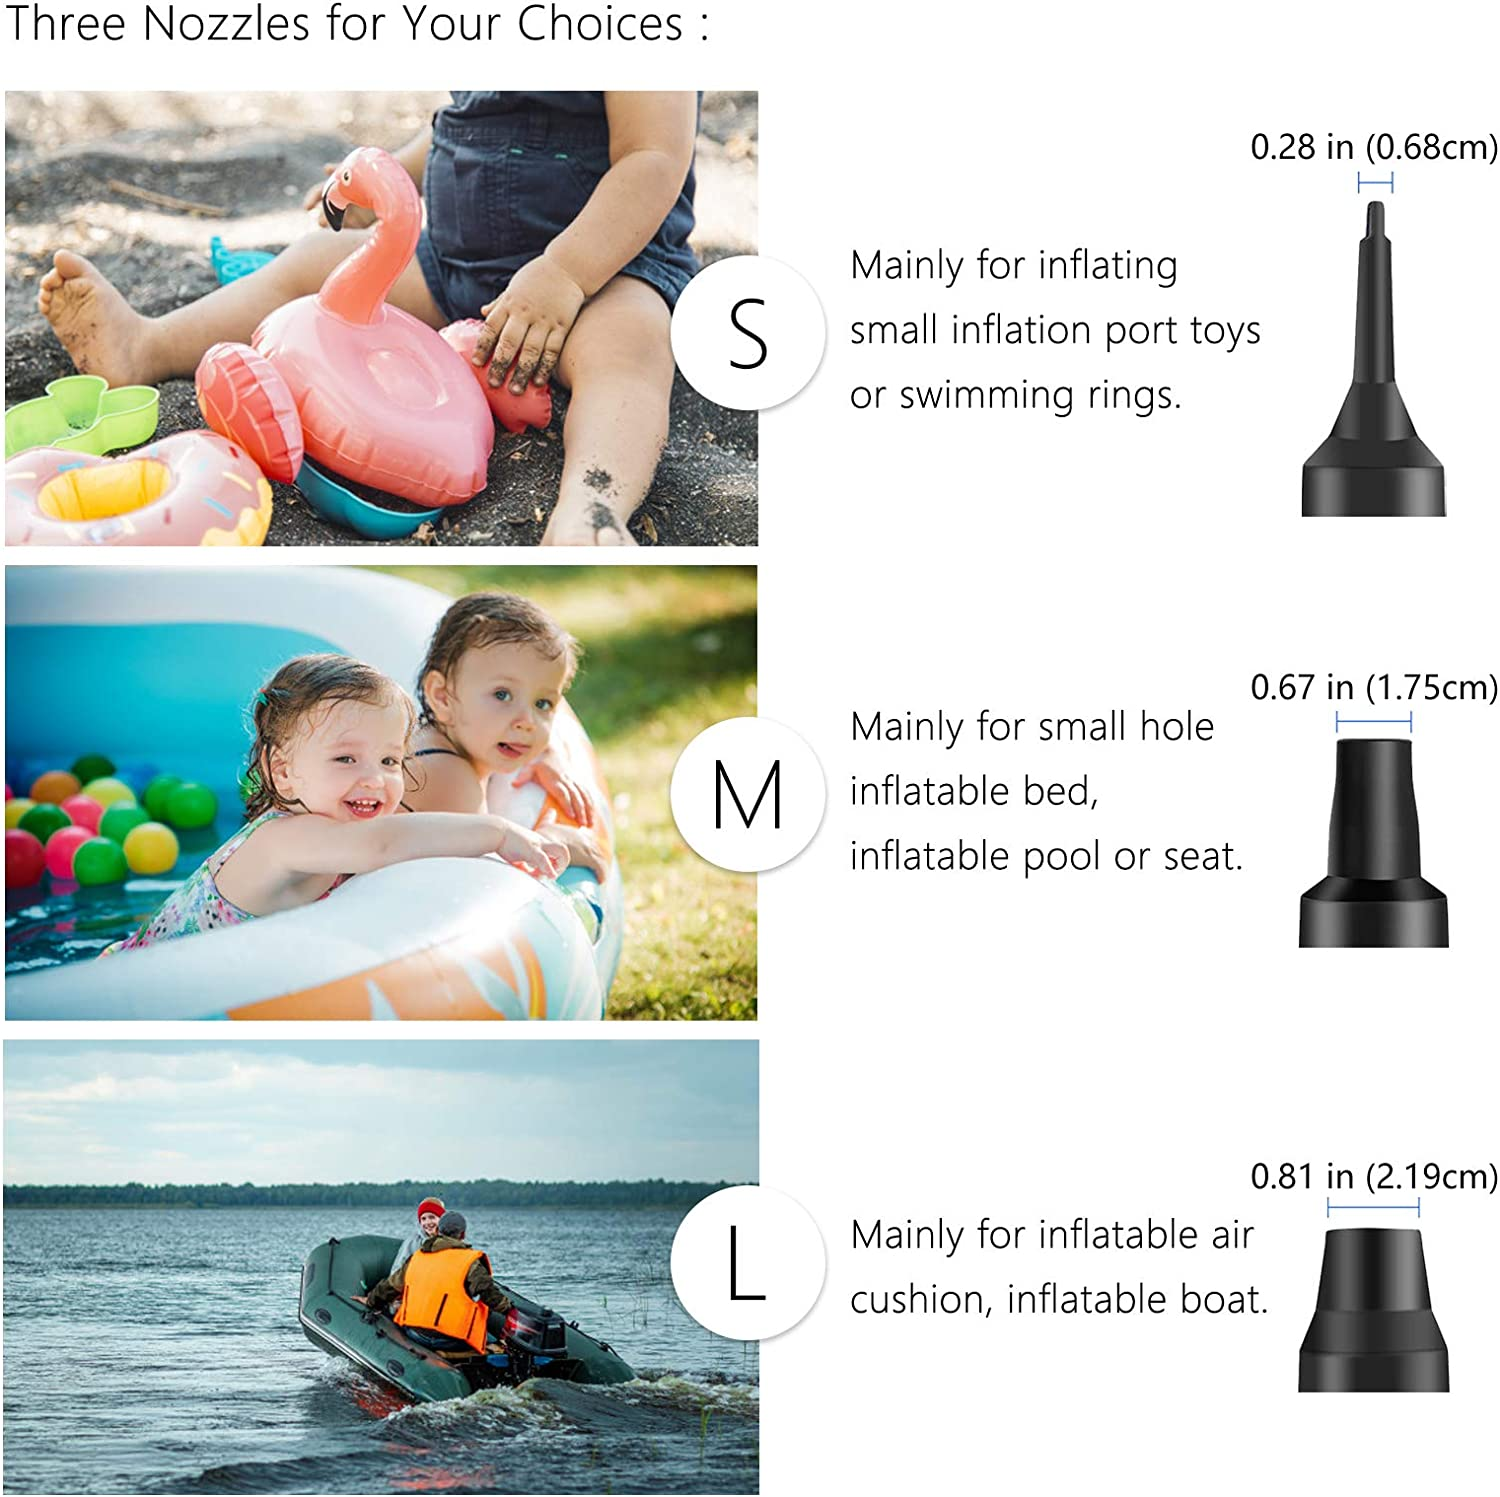 Sopito Electric Air Pump DC12V AC 100-240V Quick-Fill Portable Camping Electric Pumps with 3 Pump Nozzles for Inflatable Air Bed Lake Floats Rafts Pool Toys